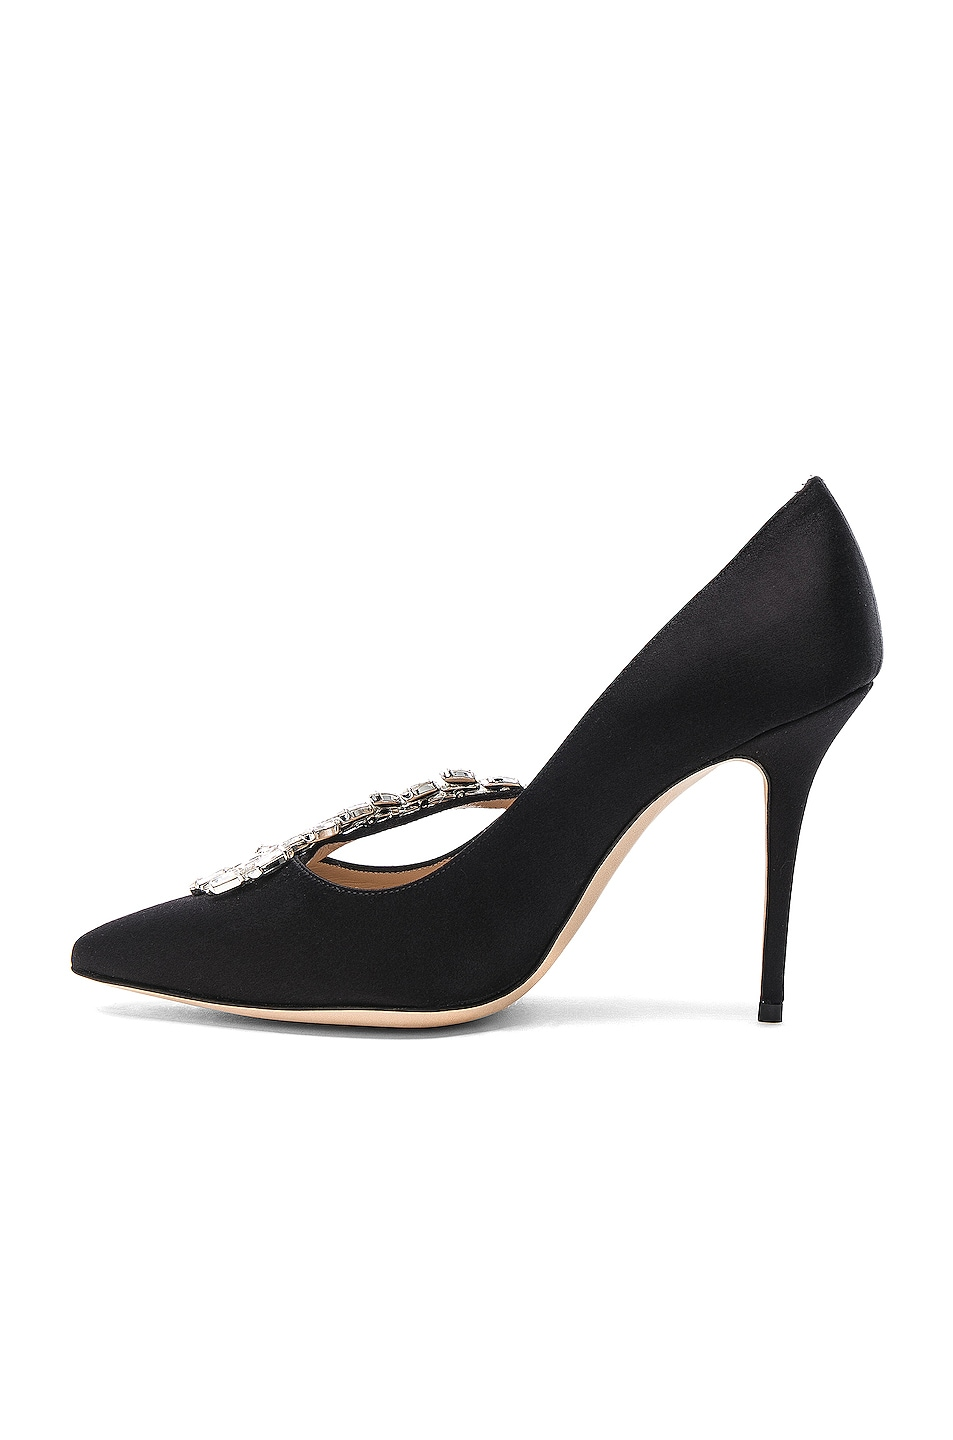 Image 5 of Manolo Blahnik Satin Nadira Heels in Black